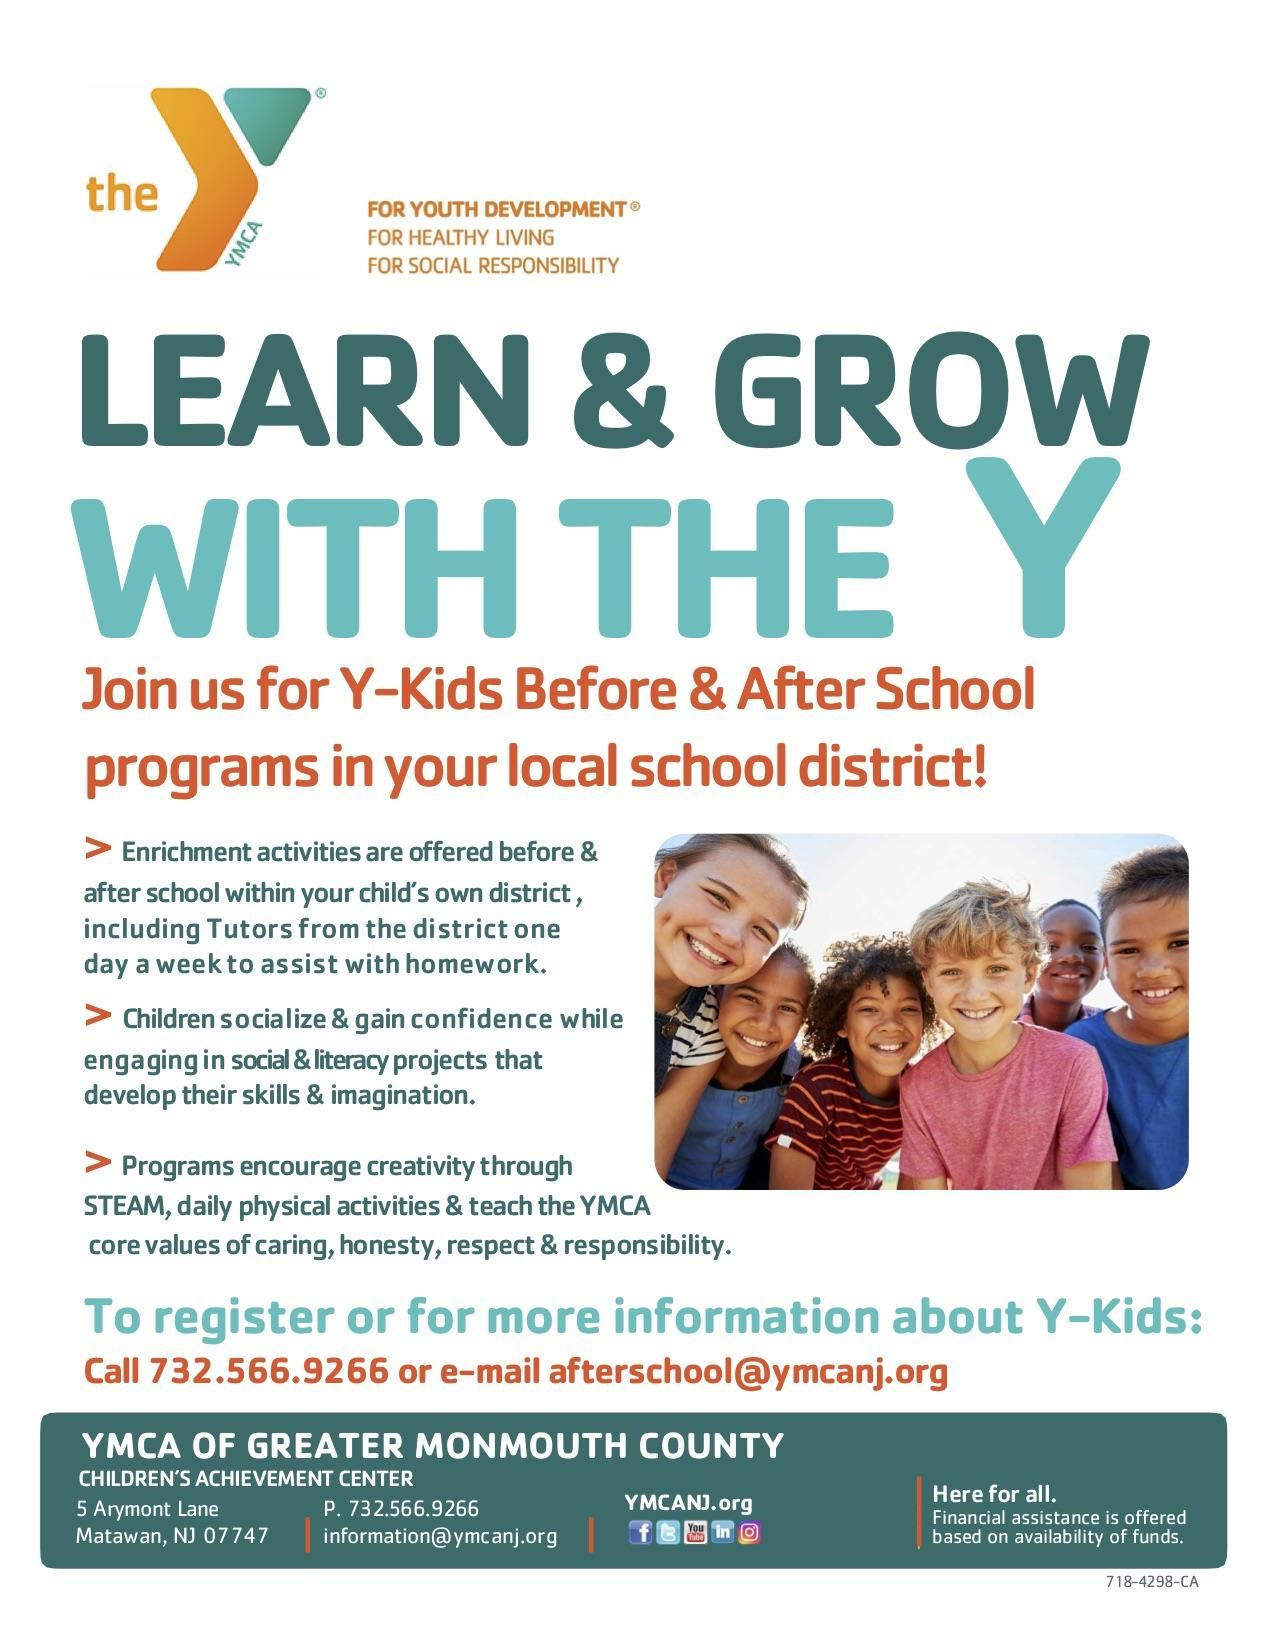 YMCA Y-Kids Program flier.